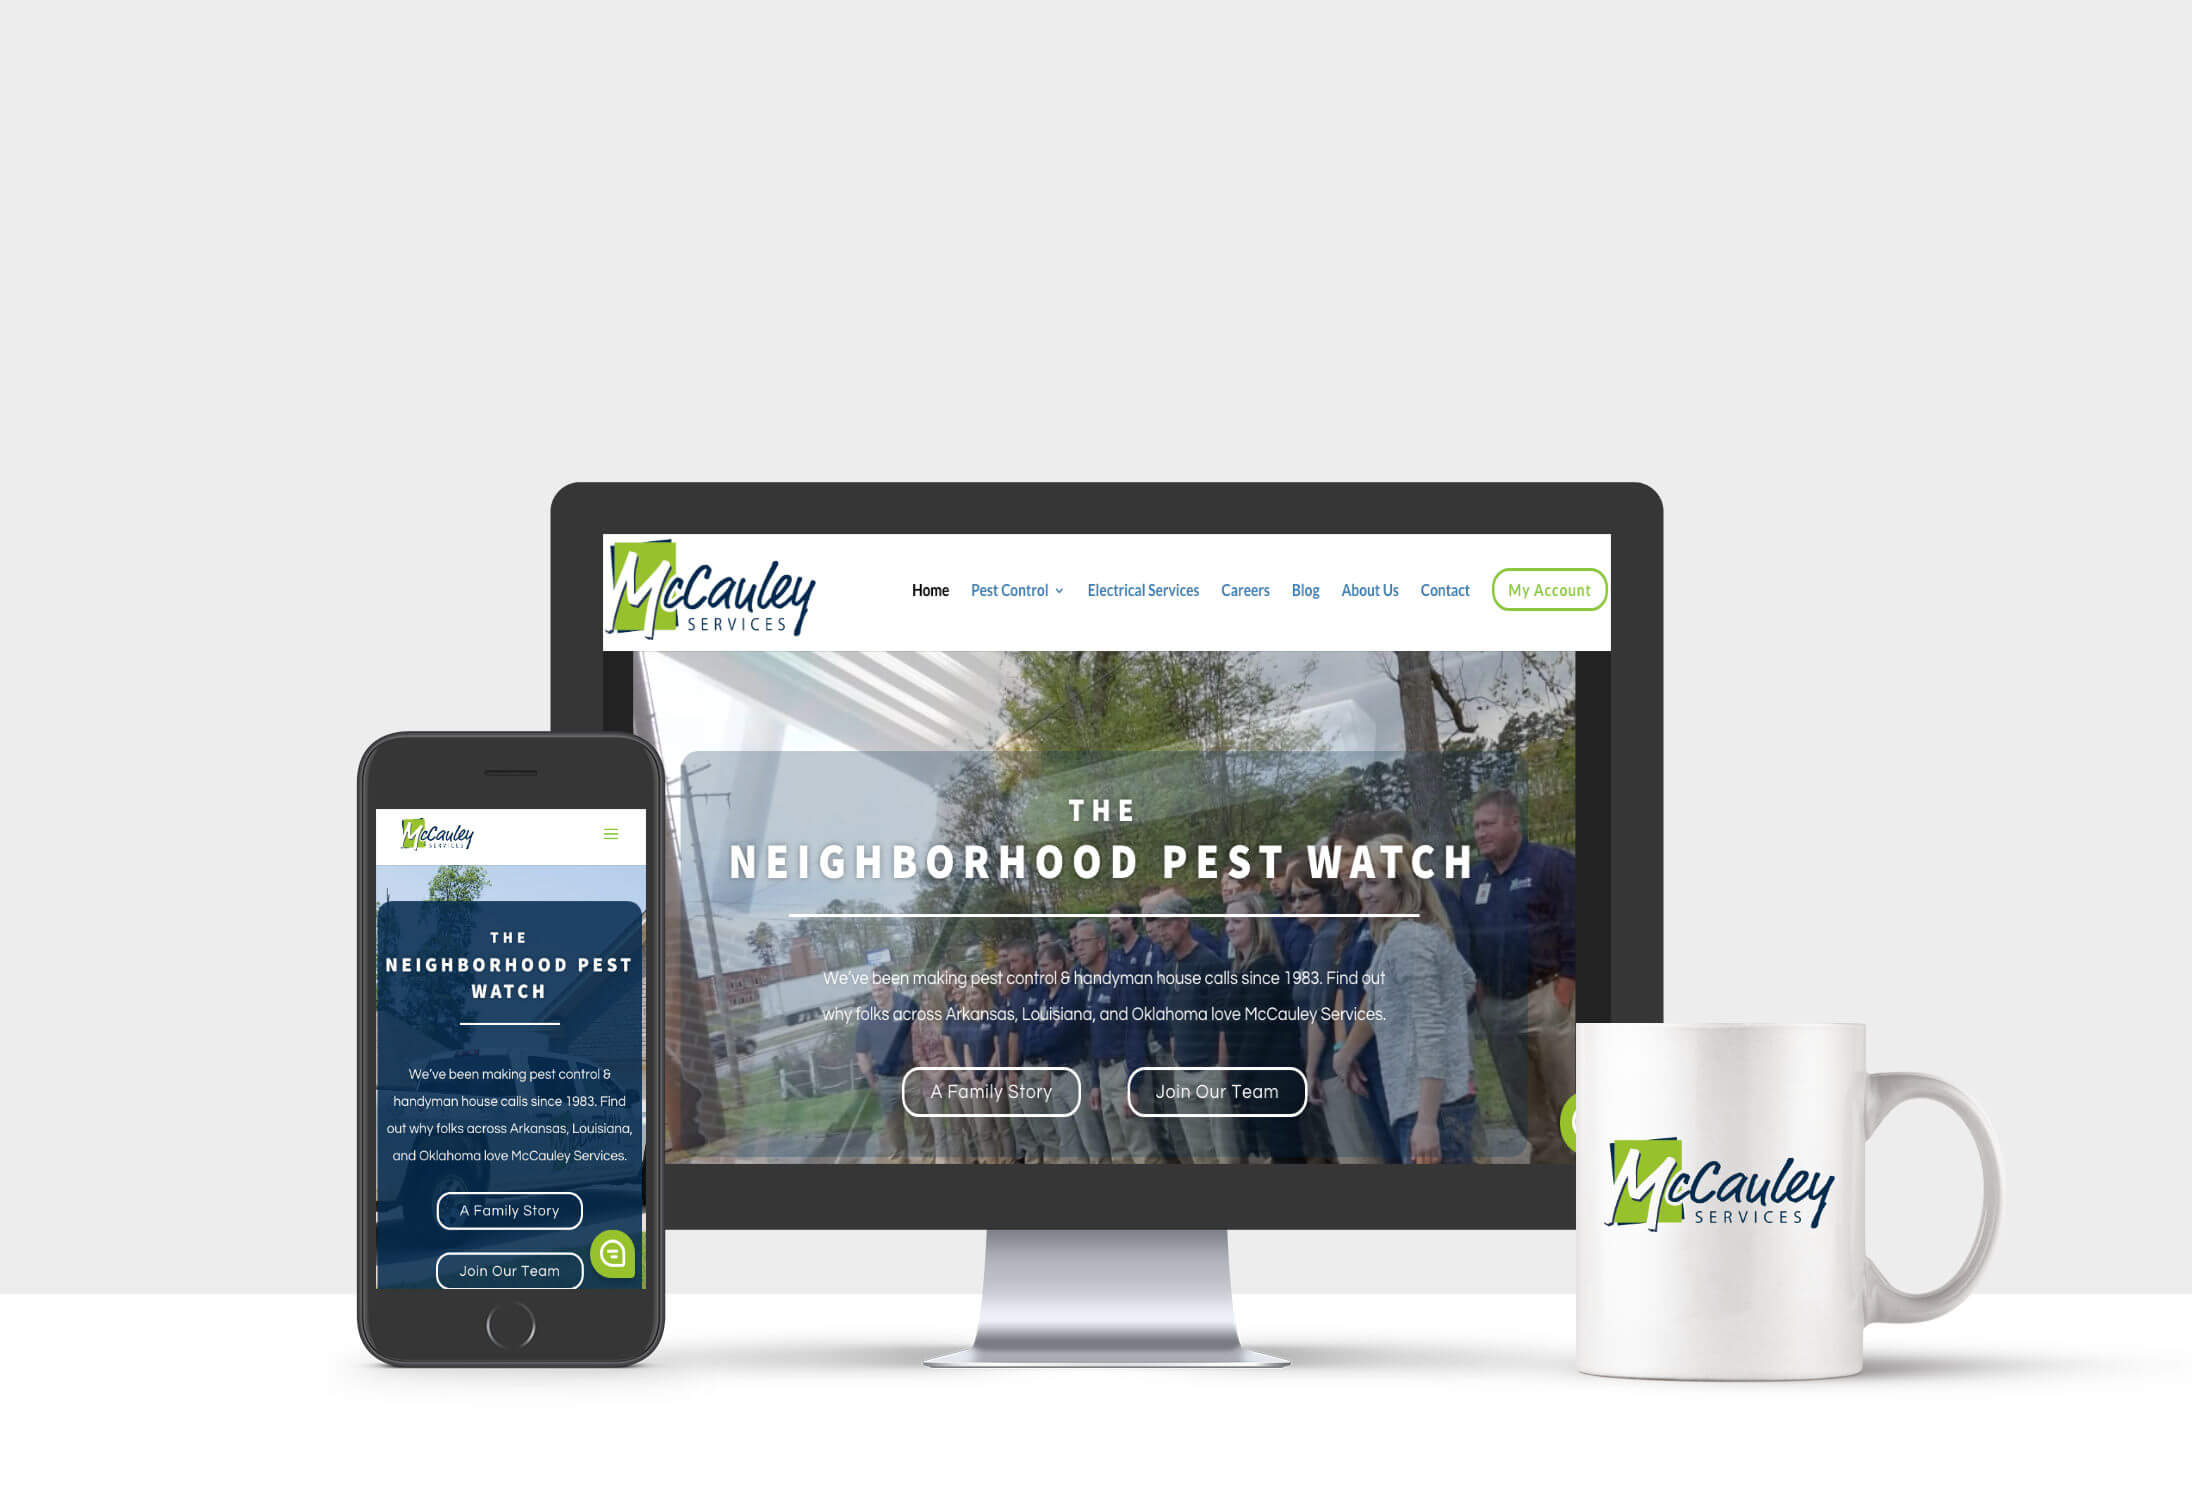 McCauley Services web design